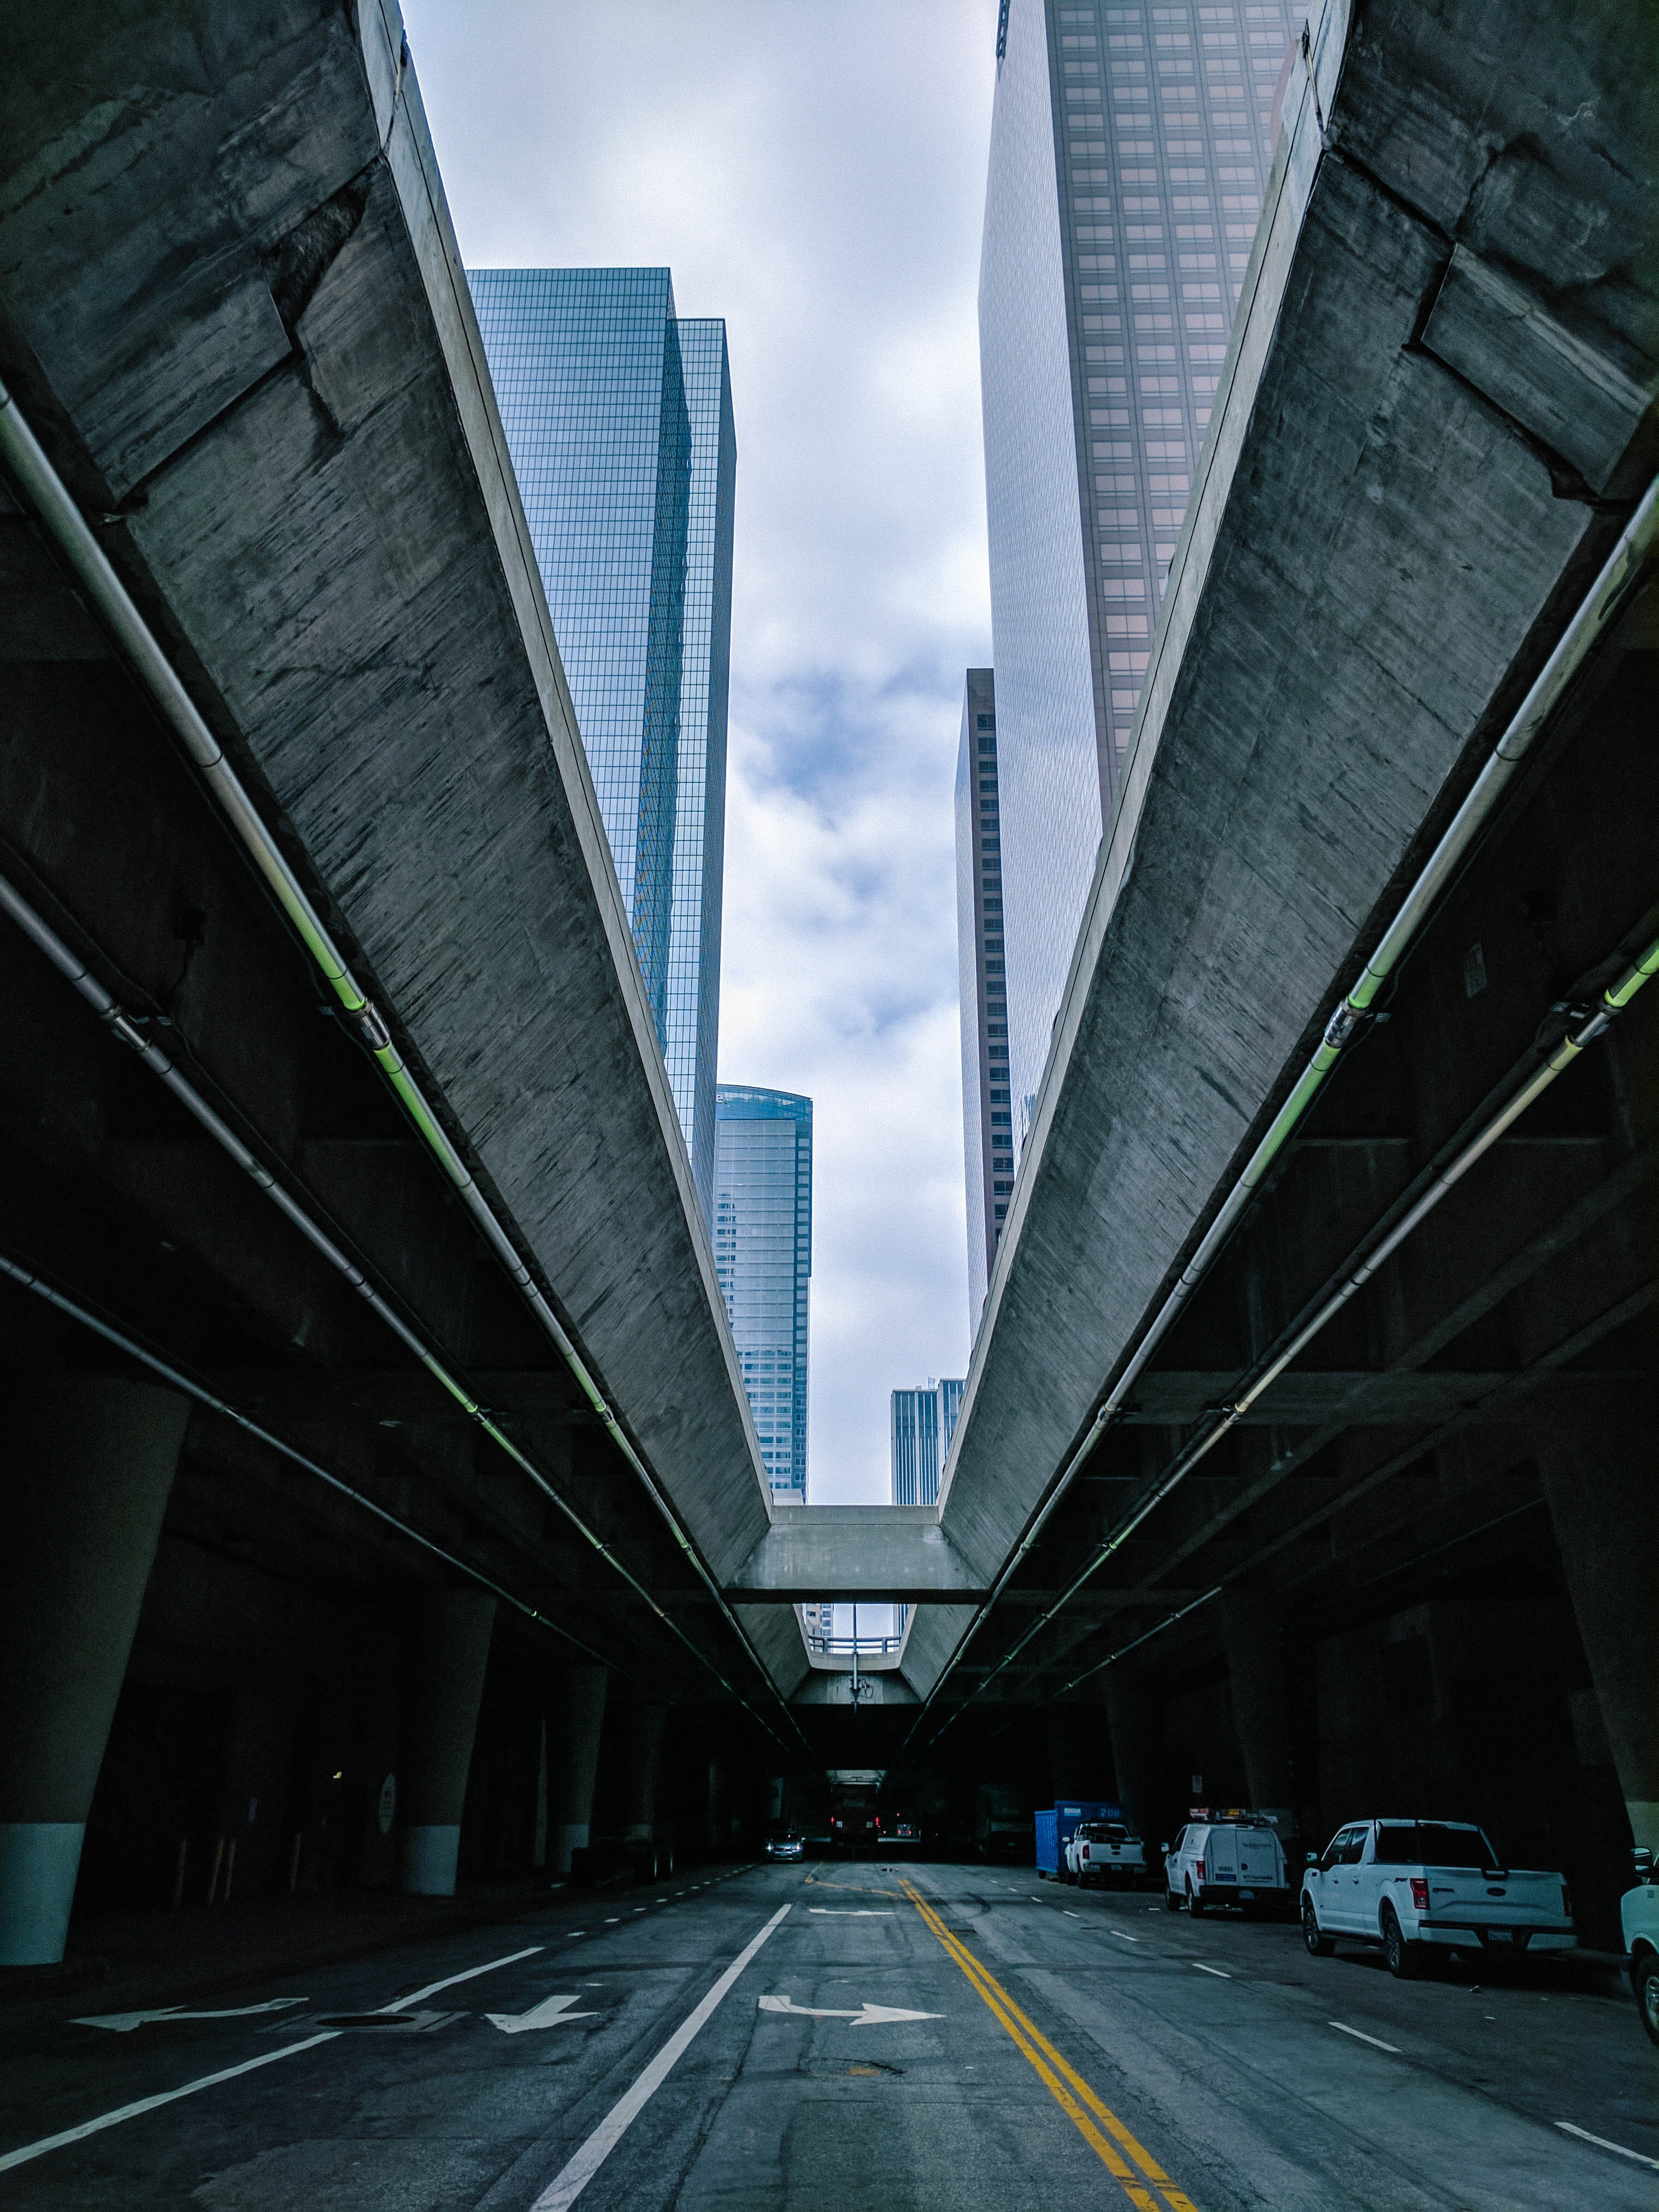 An urban city street with a long building facade shadowing above in Los Angeles